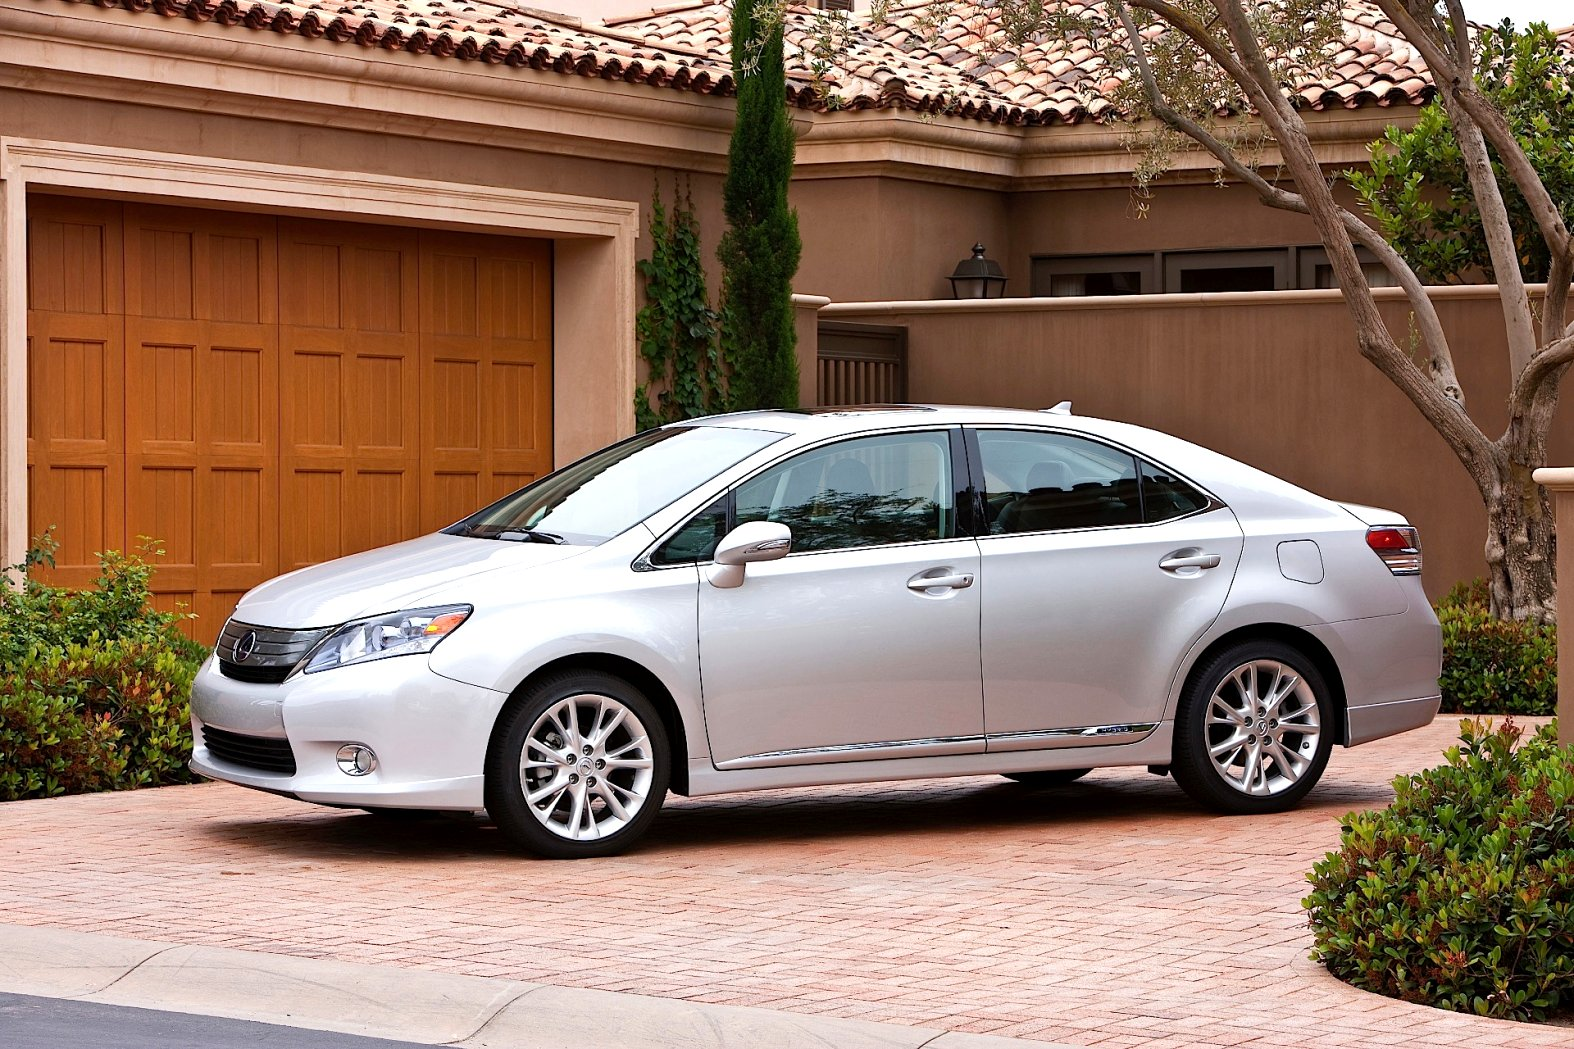 2020 lexus hs 250h Redesign and Concept